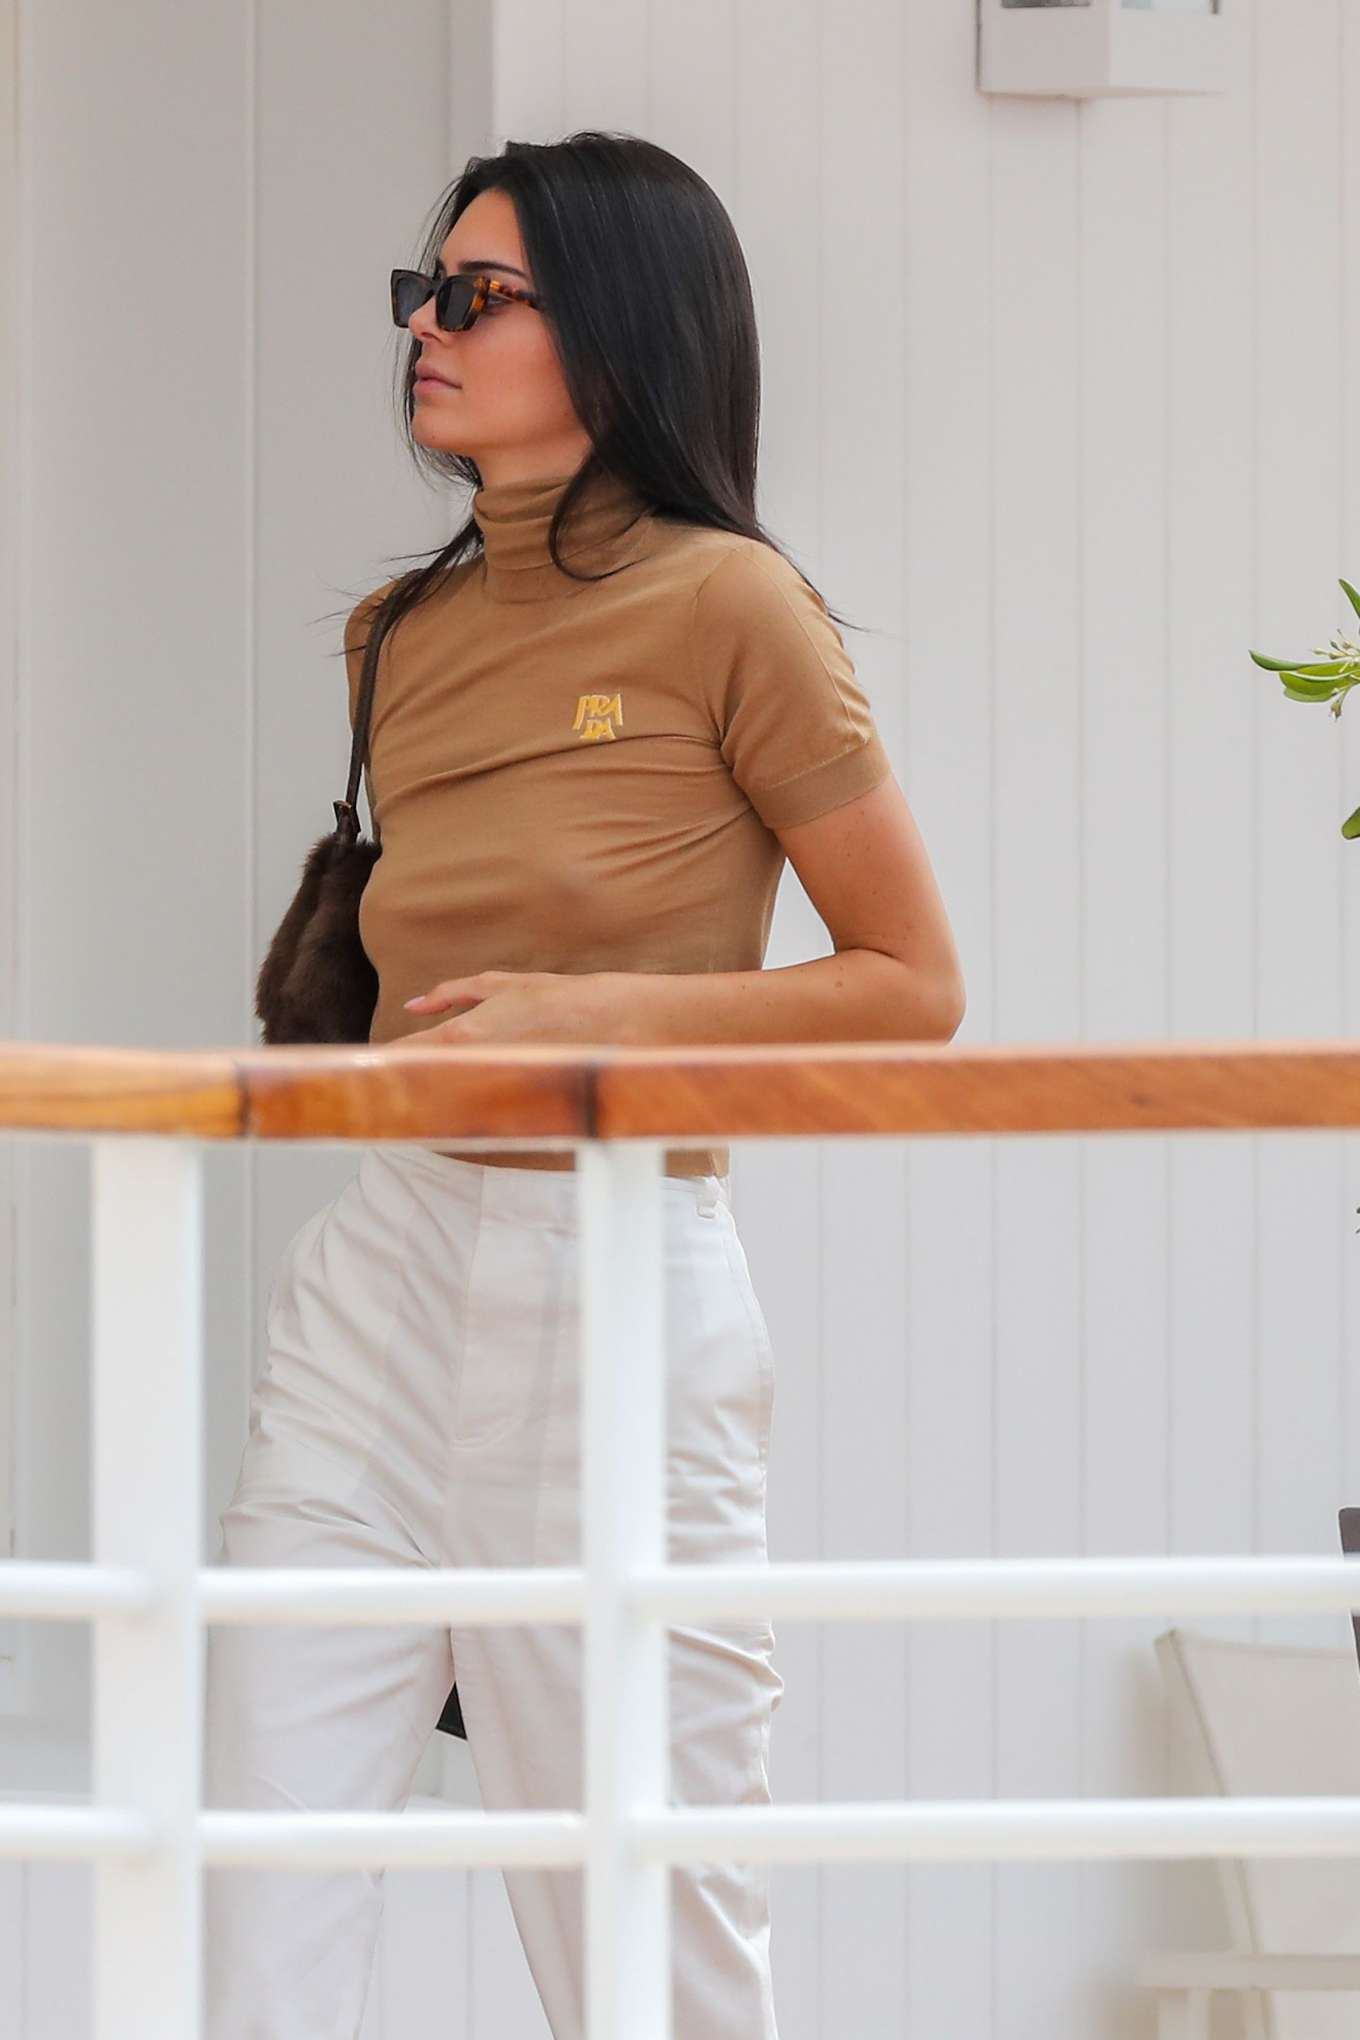 Kendall Jenner rocking Baggy white high rise pants with side pockets